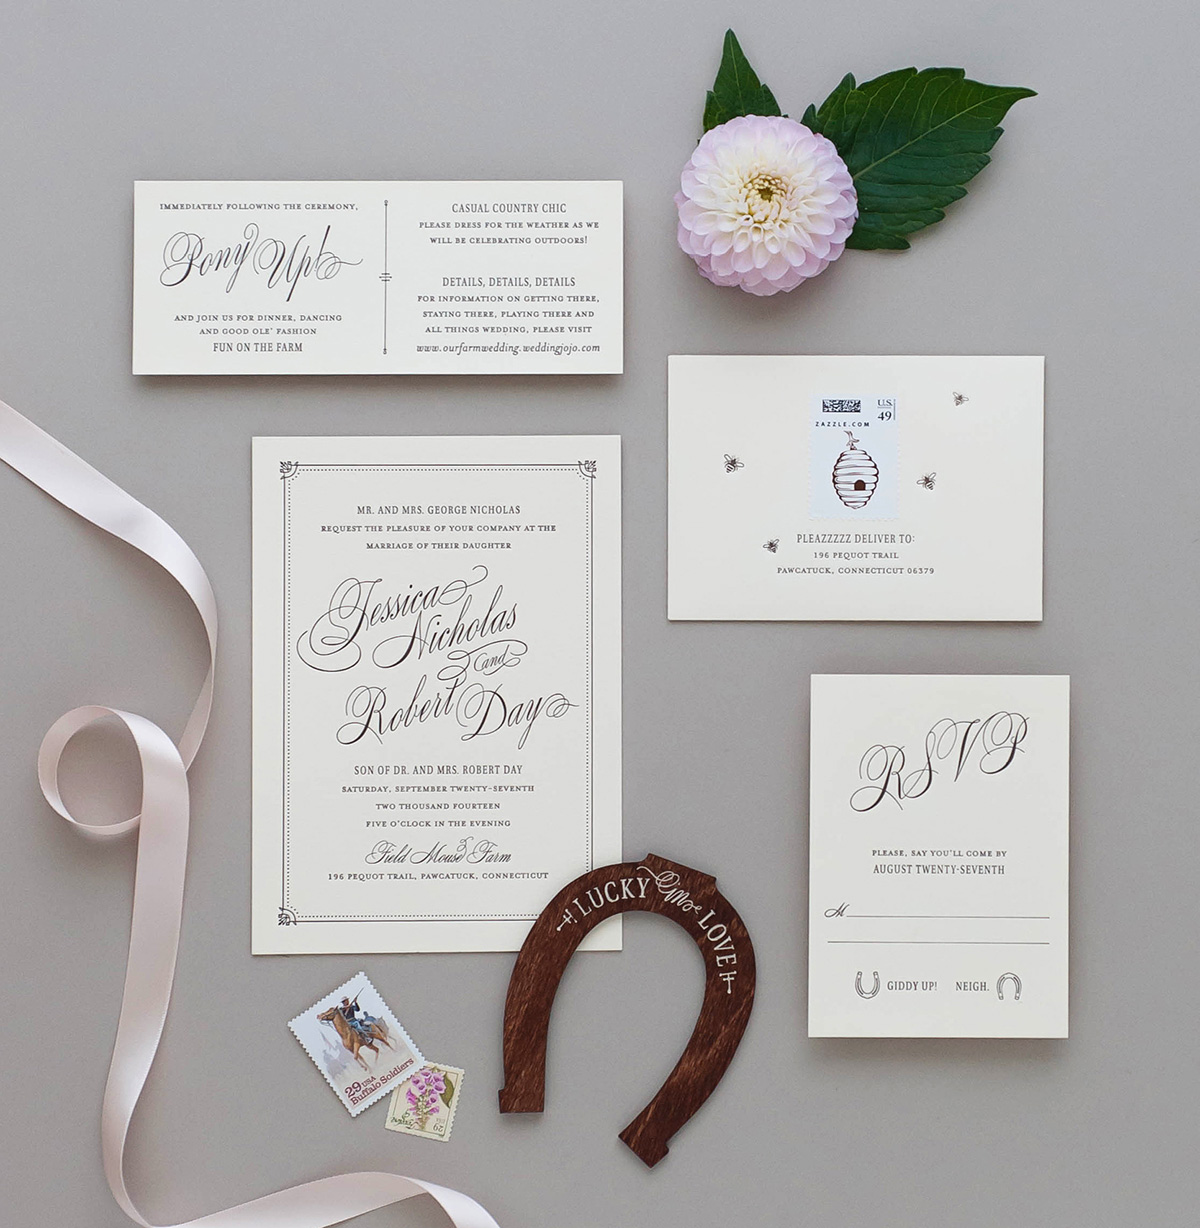 Classic letterpress invitations with calico fabric ribbon and engraved wooden horseshoe